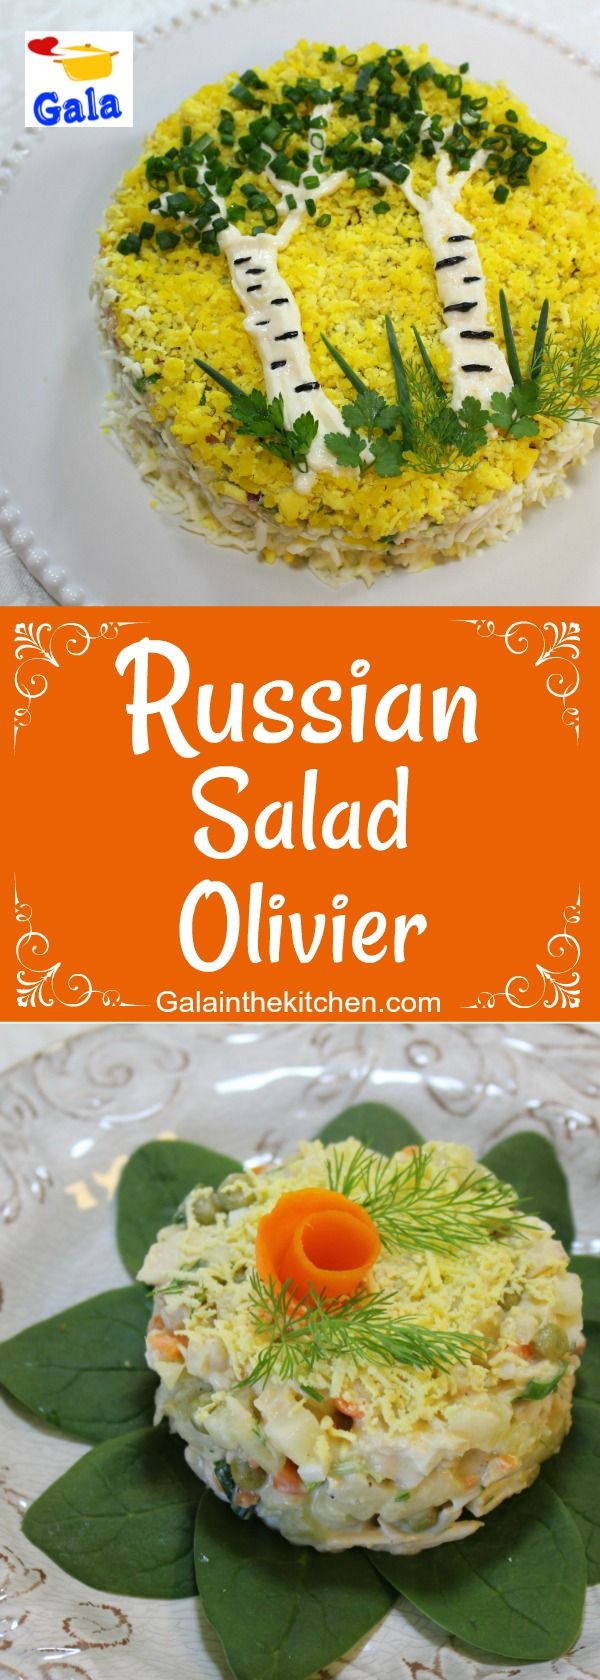 Russian potato salad recipe with garnish ideas, step by step photos and video. Welcome to visit Galainthekitchen.com